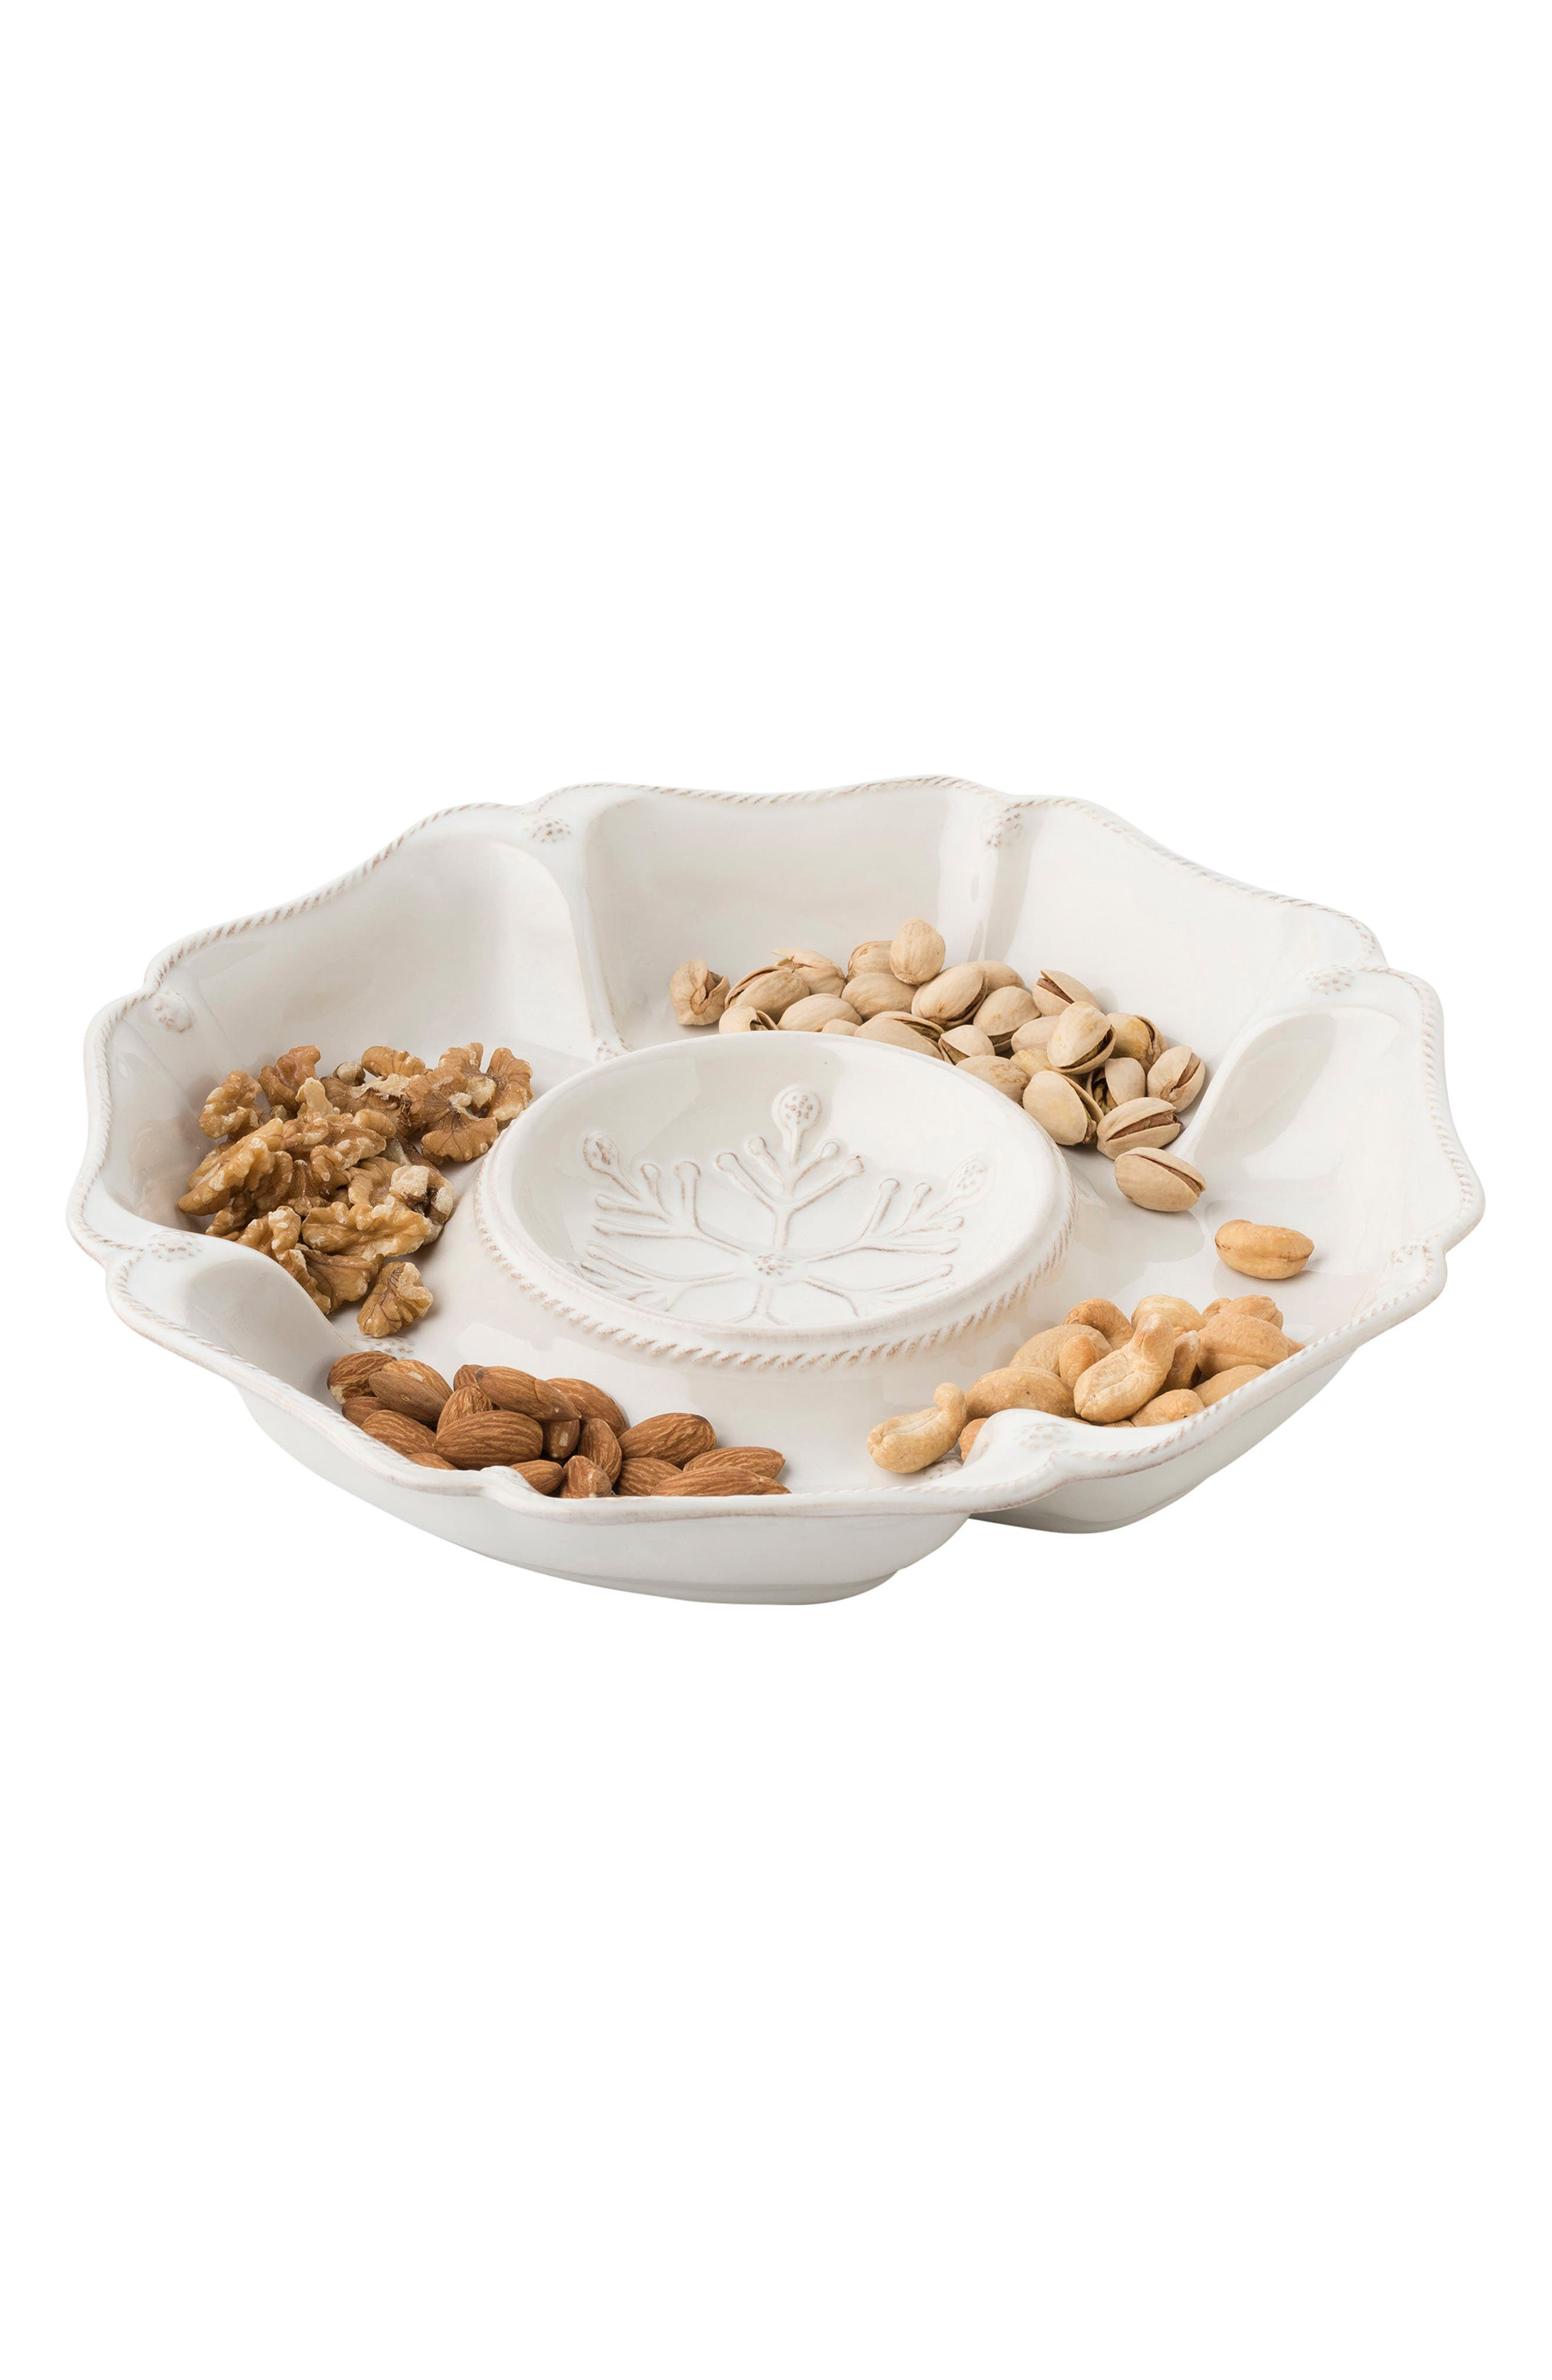 Berry & Thread Ceramic Hors D'Oeuvres Serving Tray,                             Alternate thumbnail 2, color,